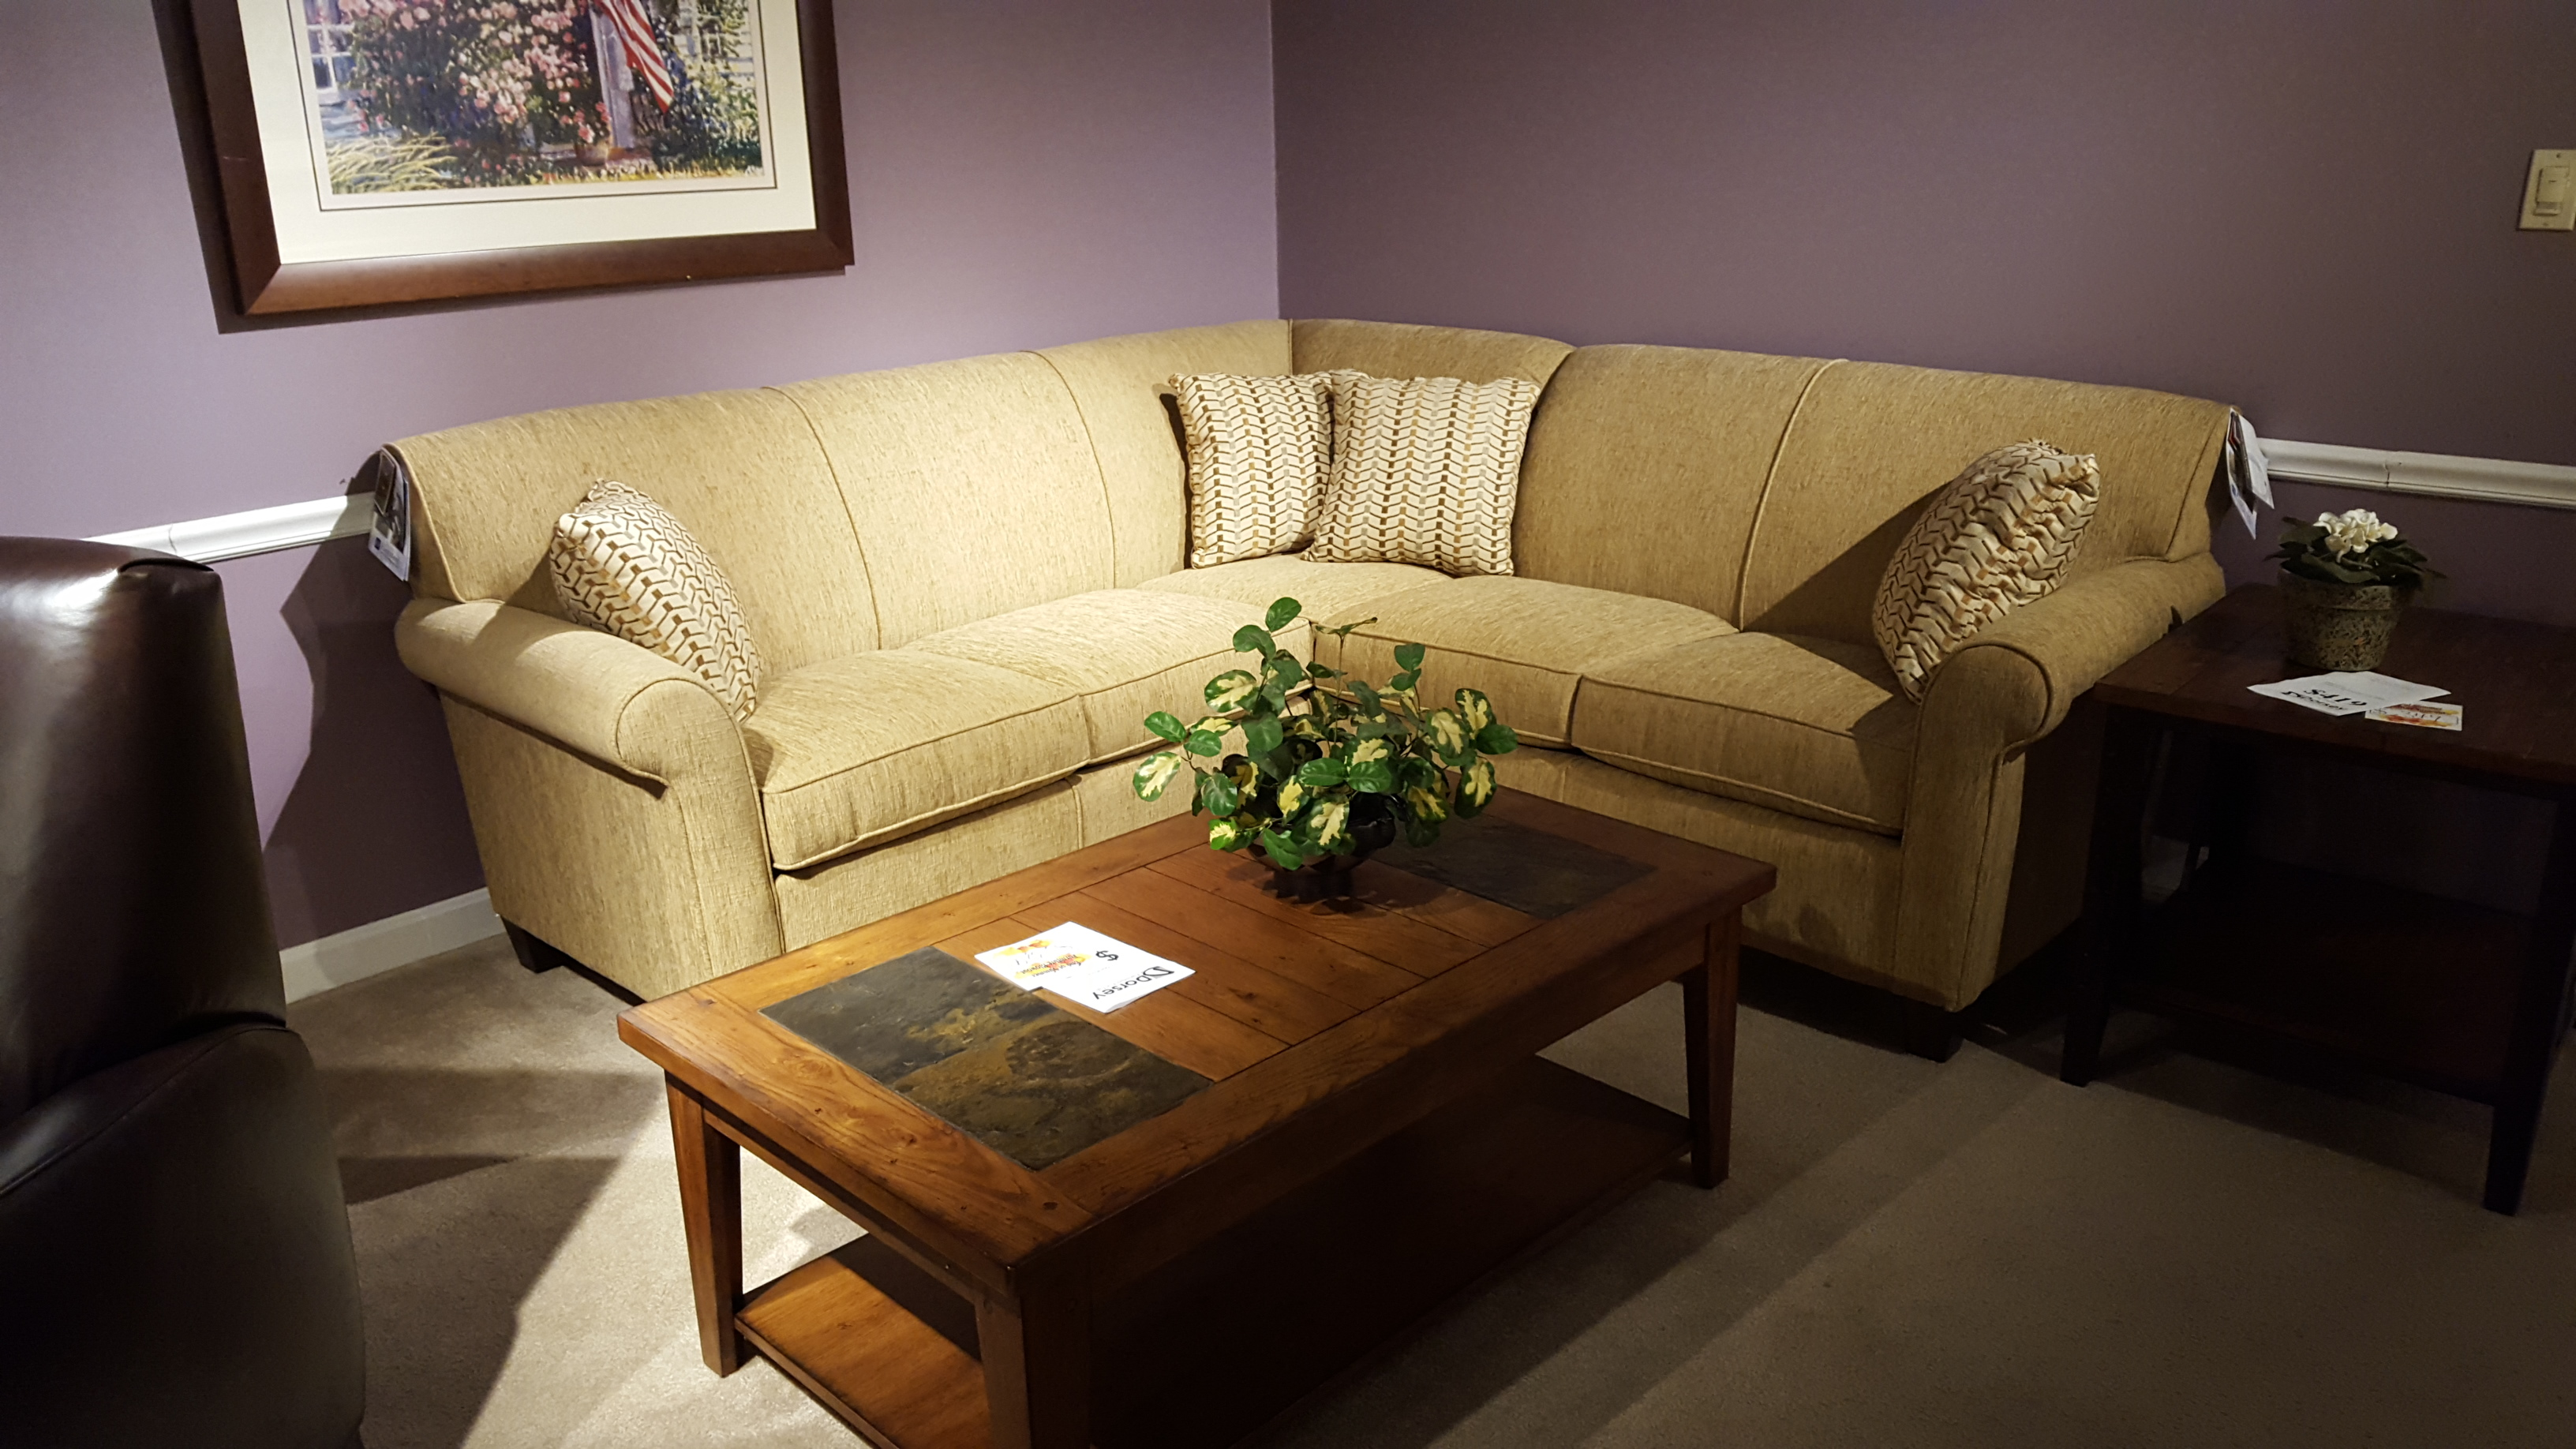 Flexsteel 5990 sectional - Furniture Store Bangor, Maine ... - photo#6